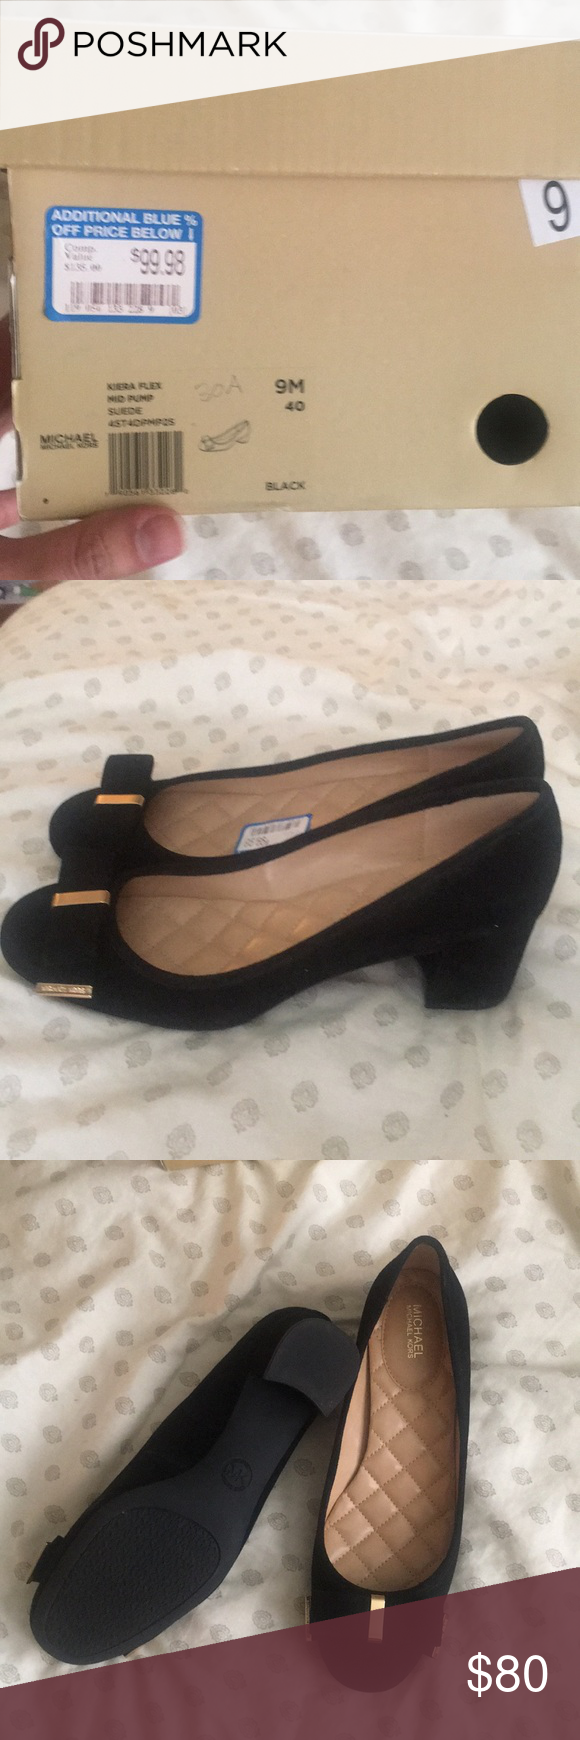 5144ce4c83f MK Michael Kors Kiera Flex mid pumps size 9 Brand new in box Michael Kors  Kiera